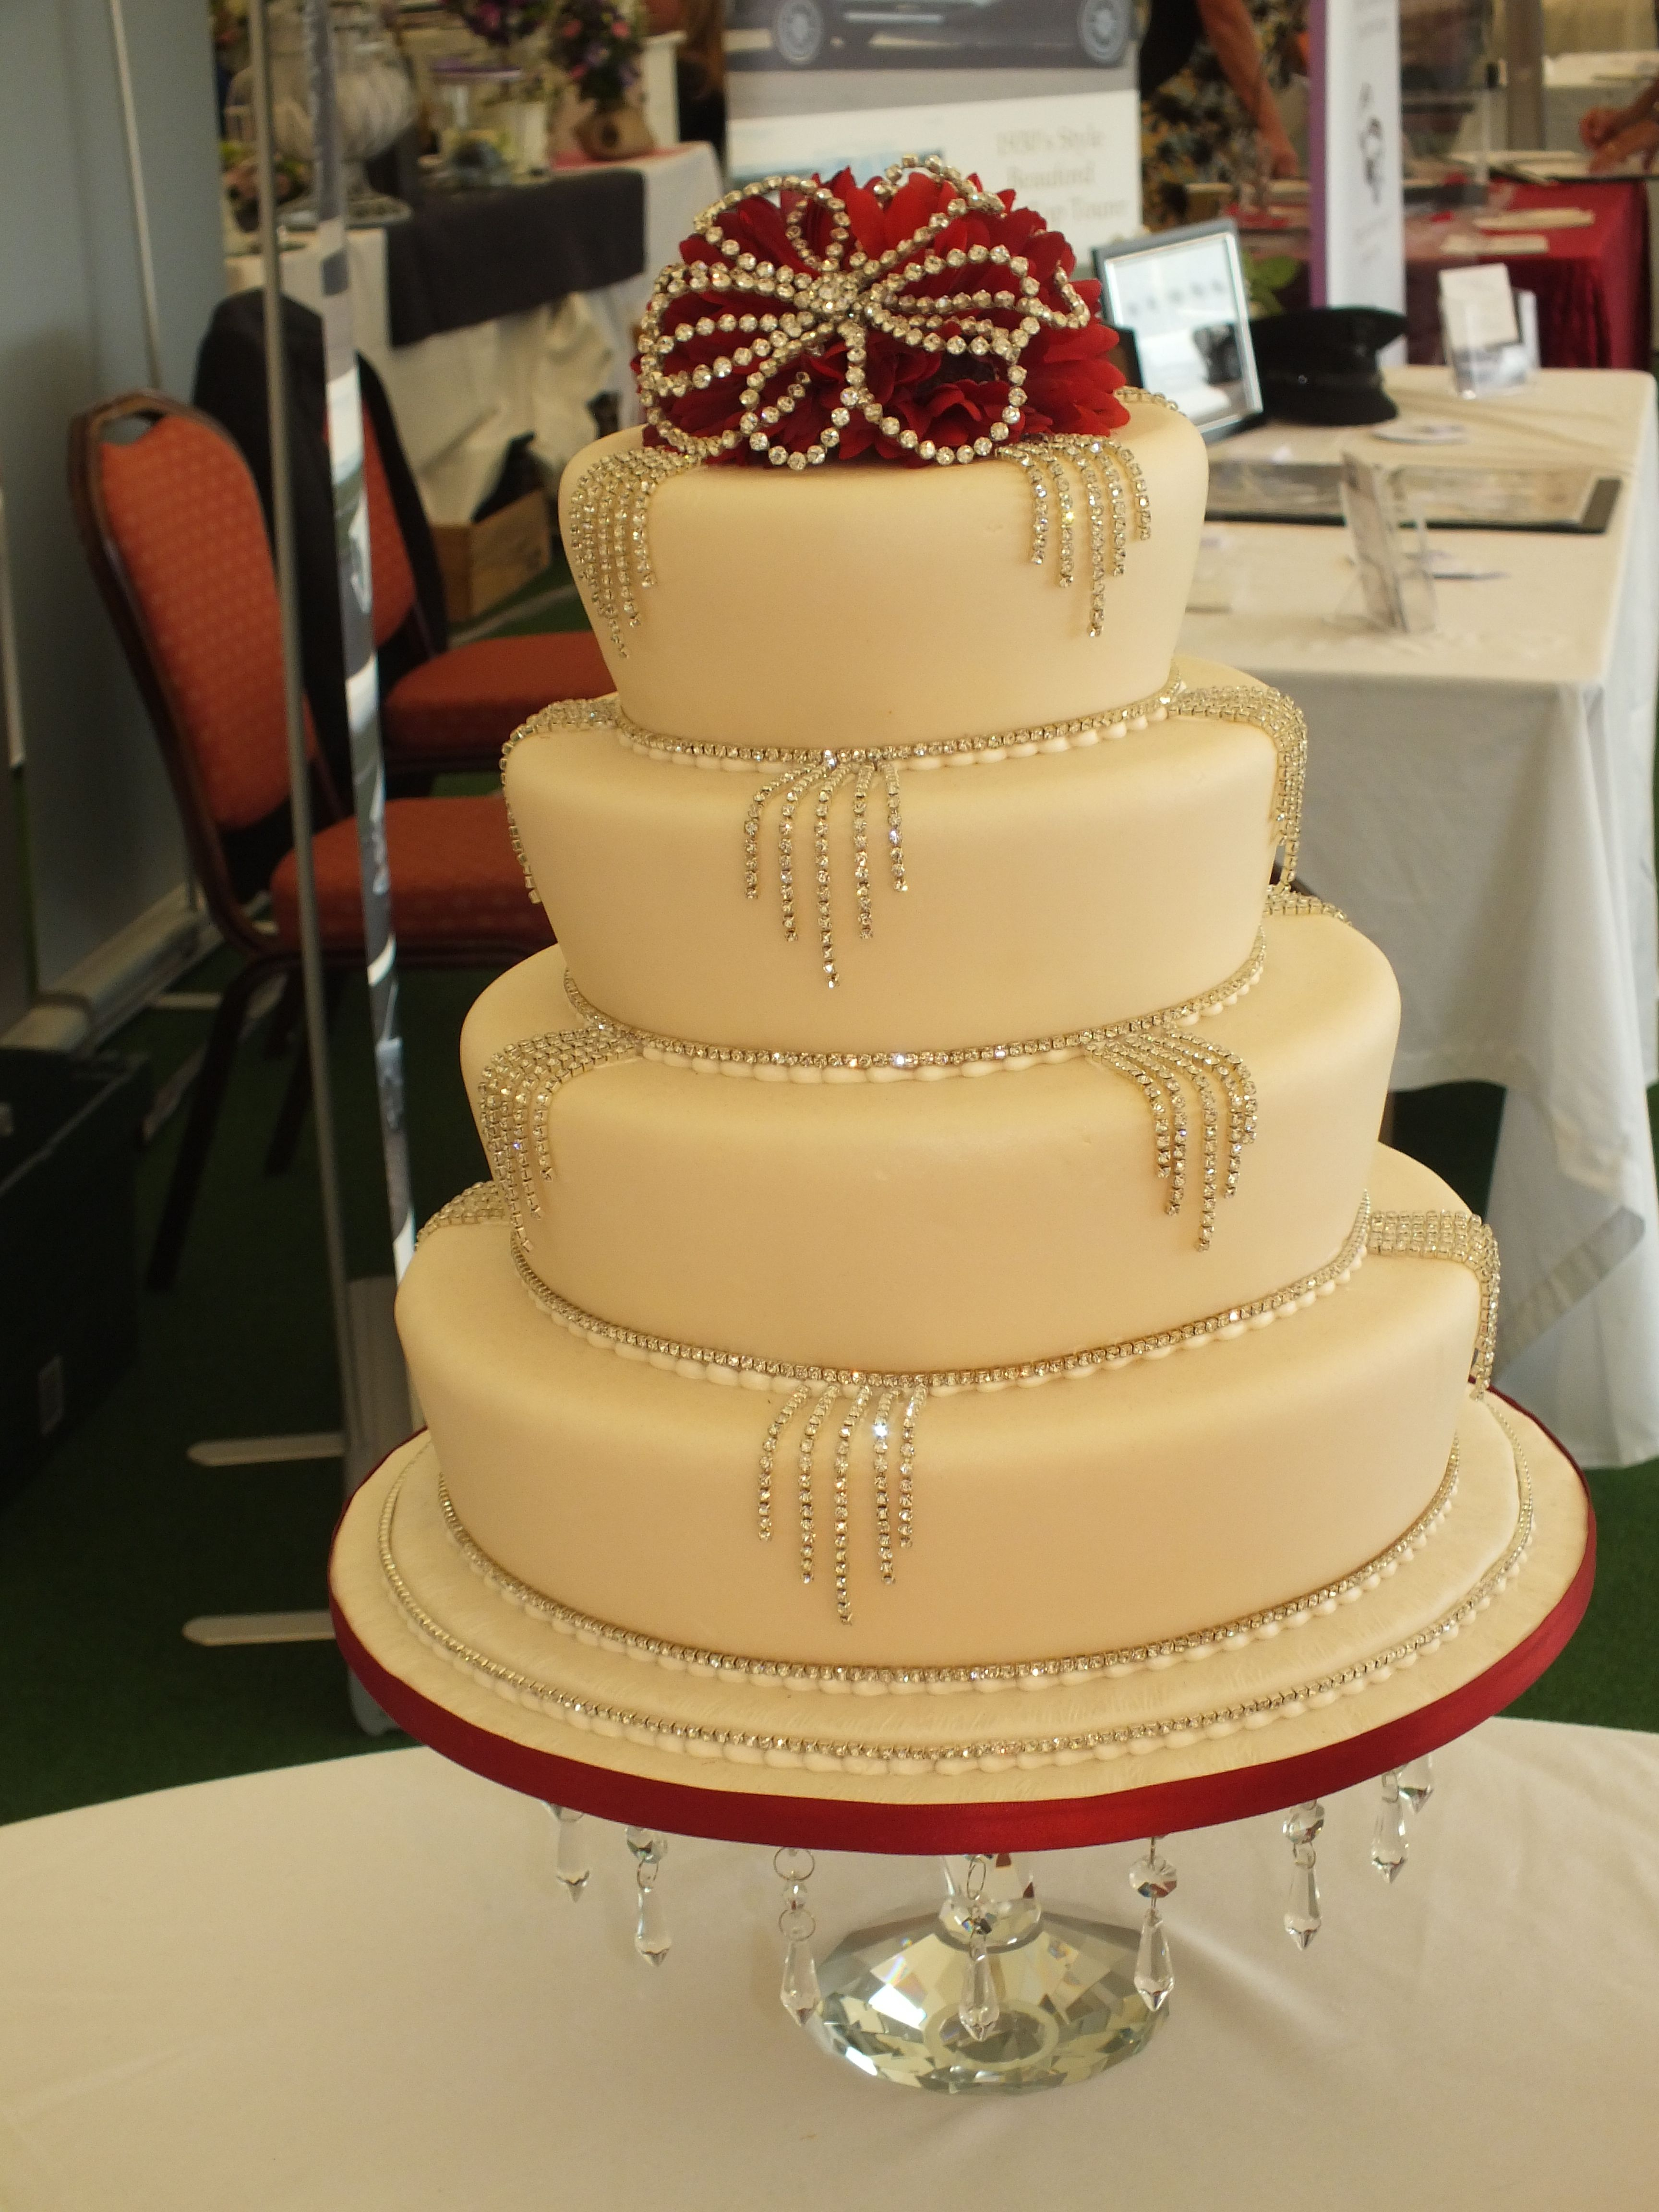 Brynawel Creative Cakes Diamontes Red 4 tier cake Bespoke crystal ...